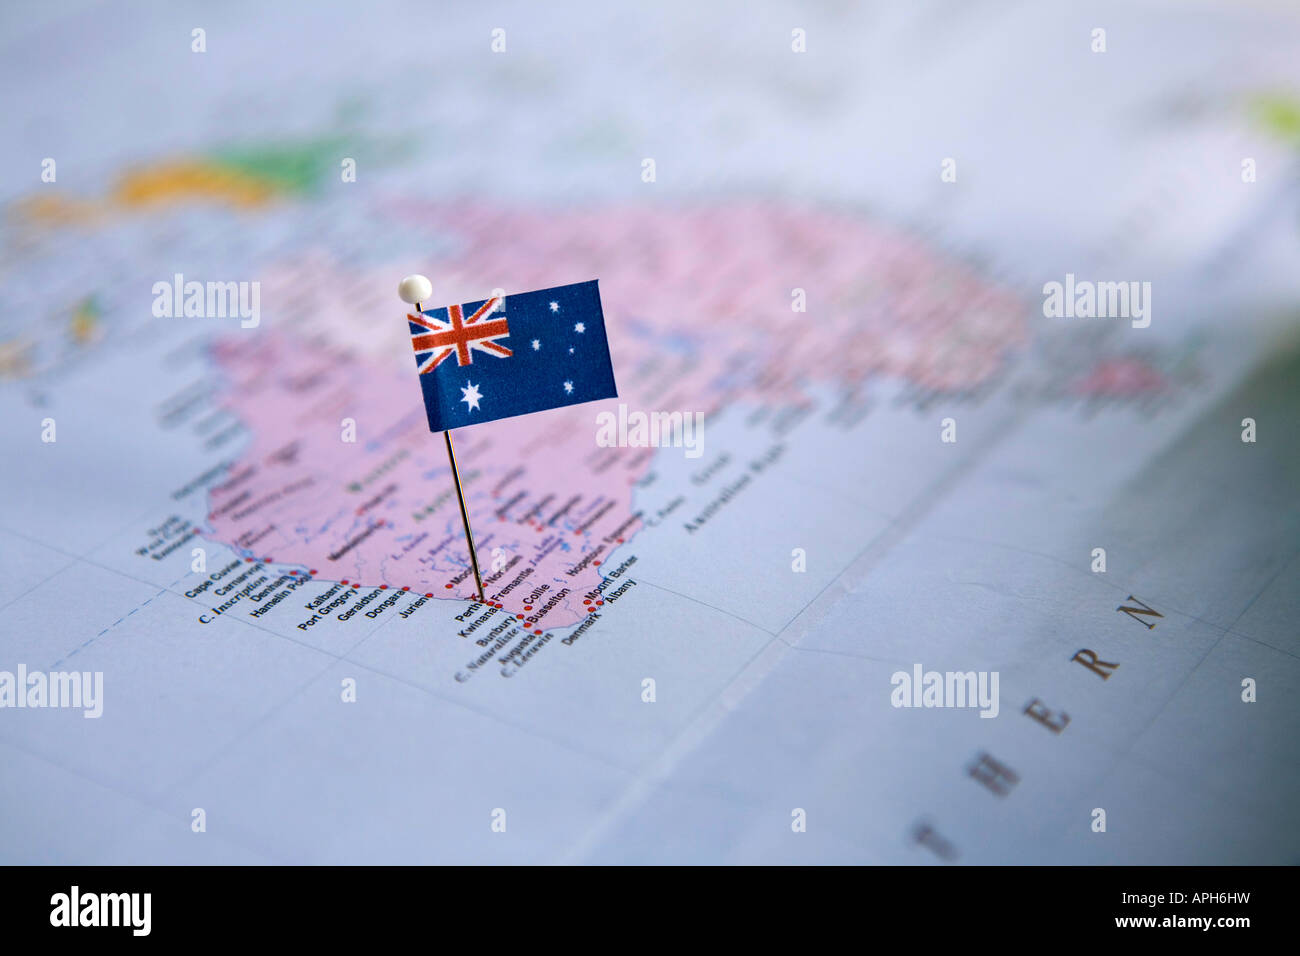 Flag Pin Placed on World Map in Perth Australia Stock Photo     Flag Pin Placed on World Map in Perth Australia